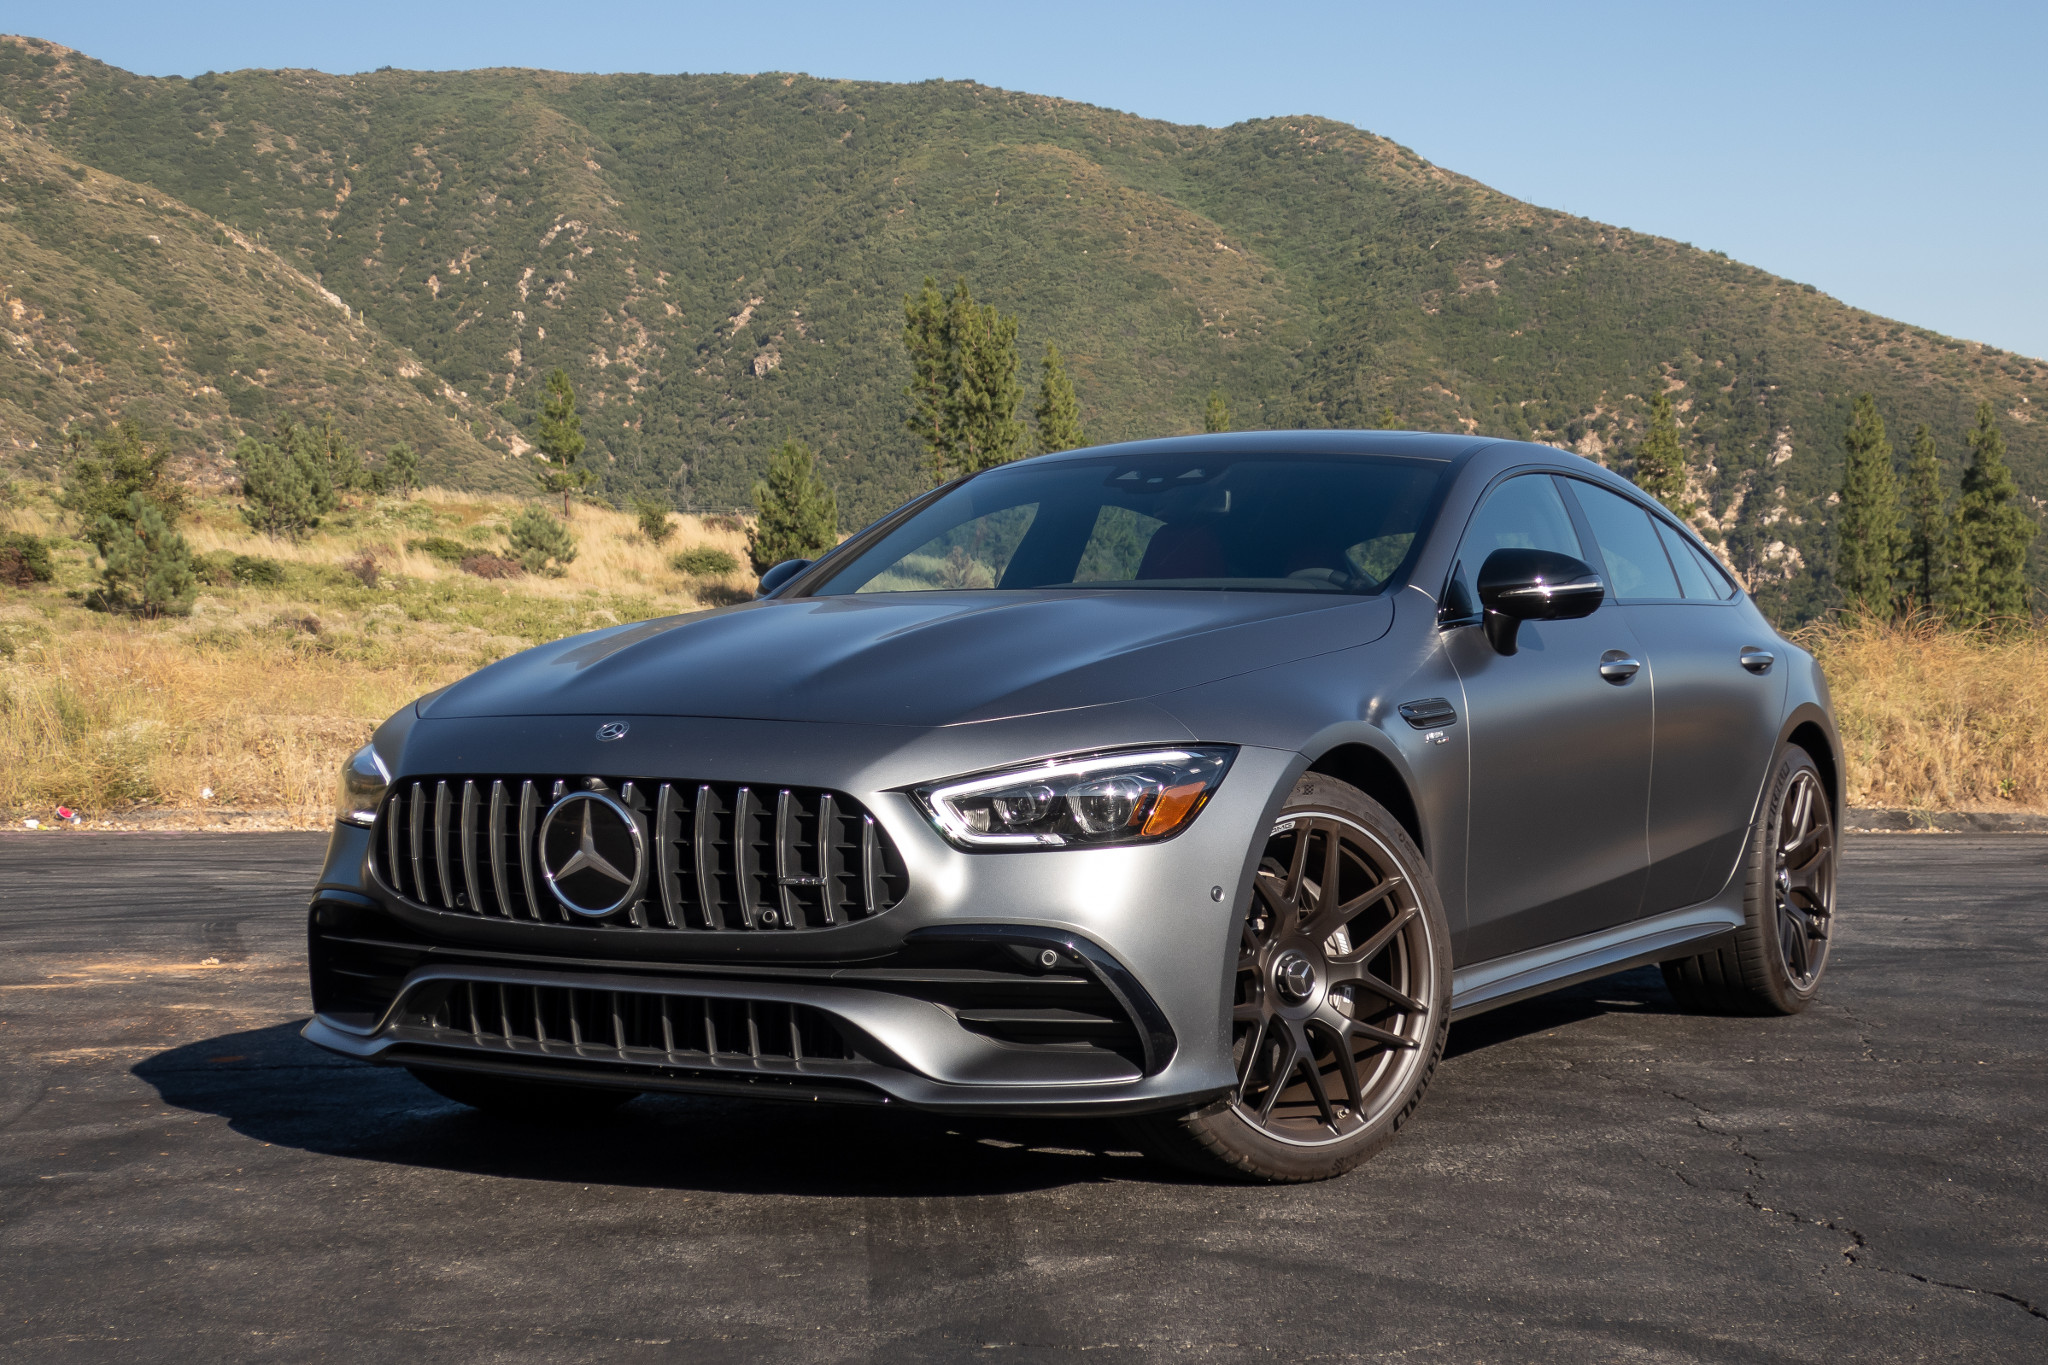 2019 Mercedes-AMG GT 53 Review: The Delightful Intersection of Luxury and Fury